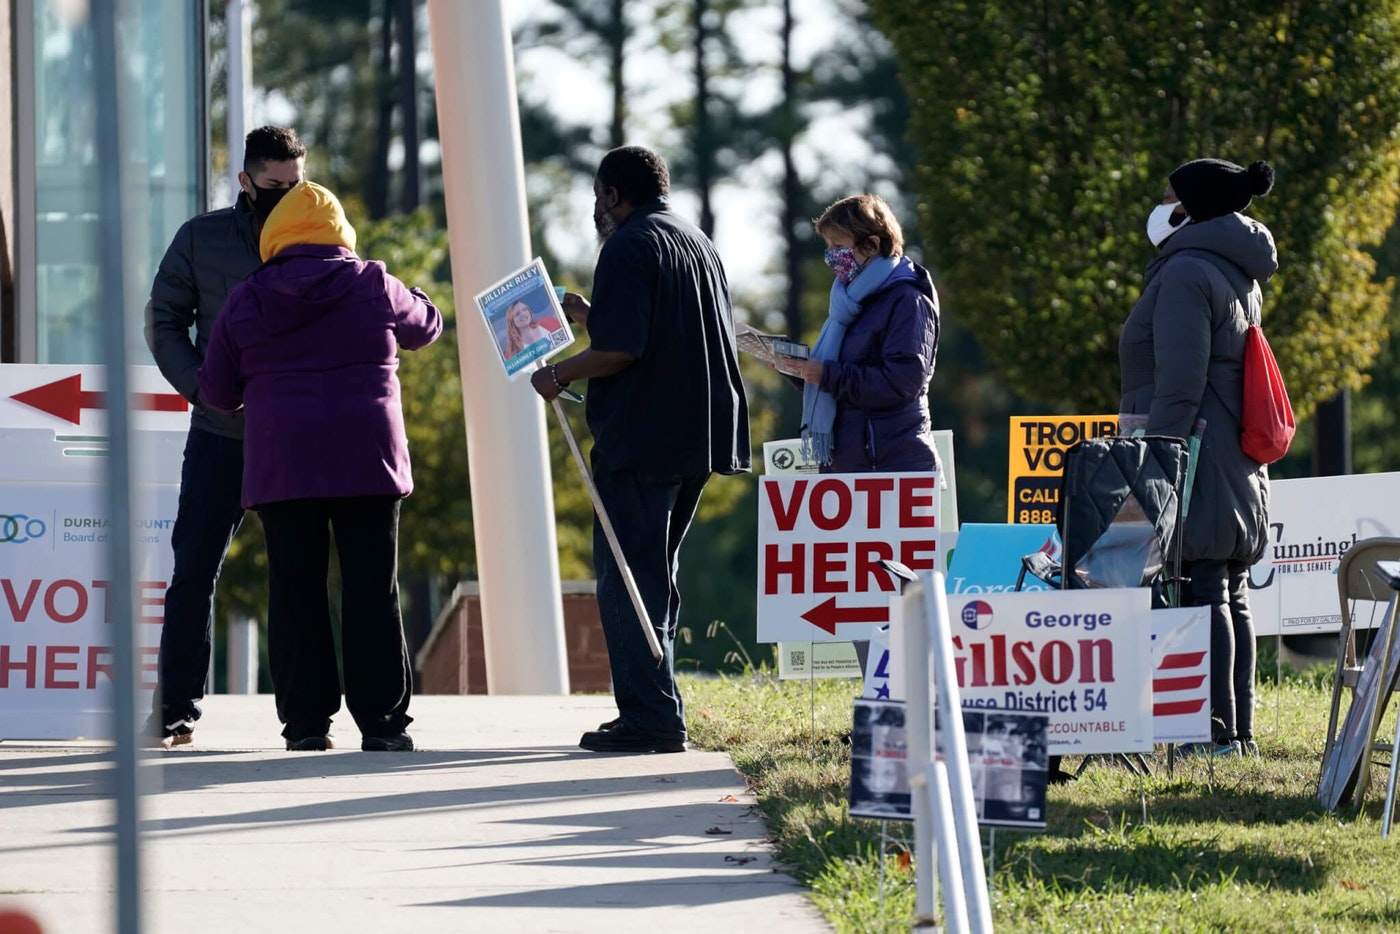 Voters are assisted at a polling location at the South Regional Library in Durham, N.C., Tuesday, Nov. 3, 2020. (AP Photo/Gerry Broome)